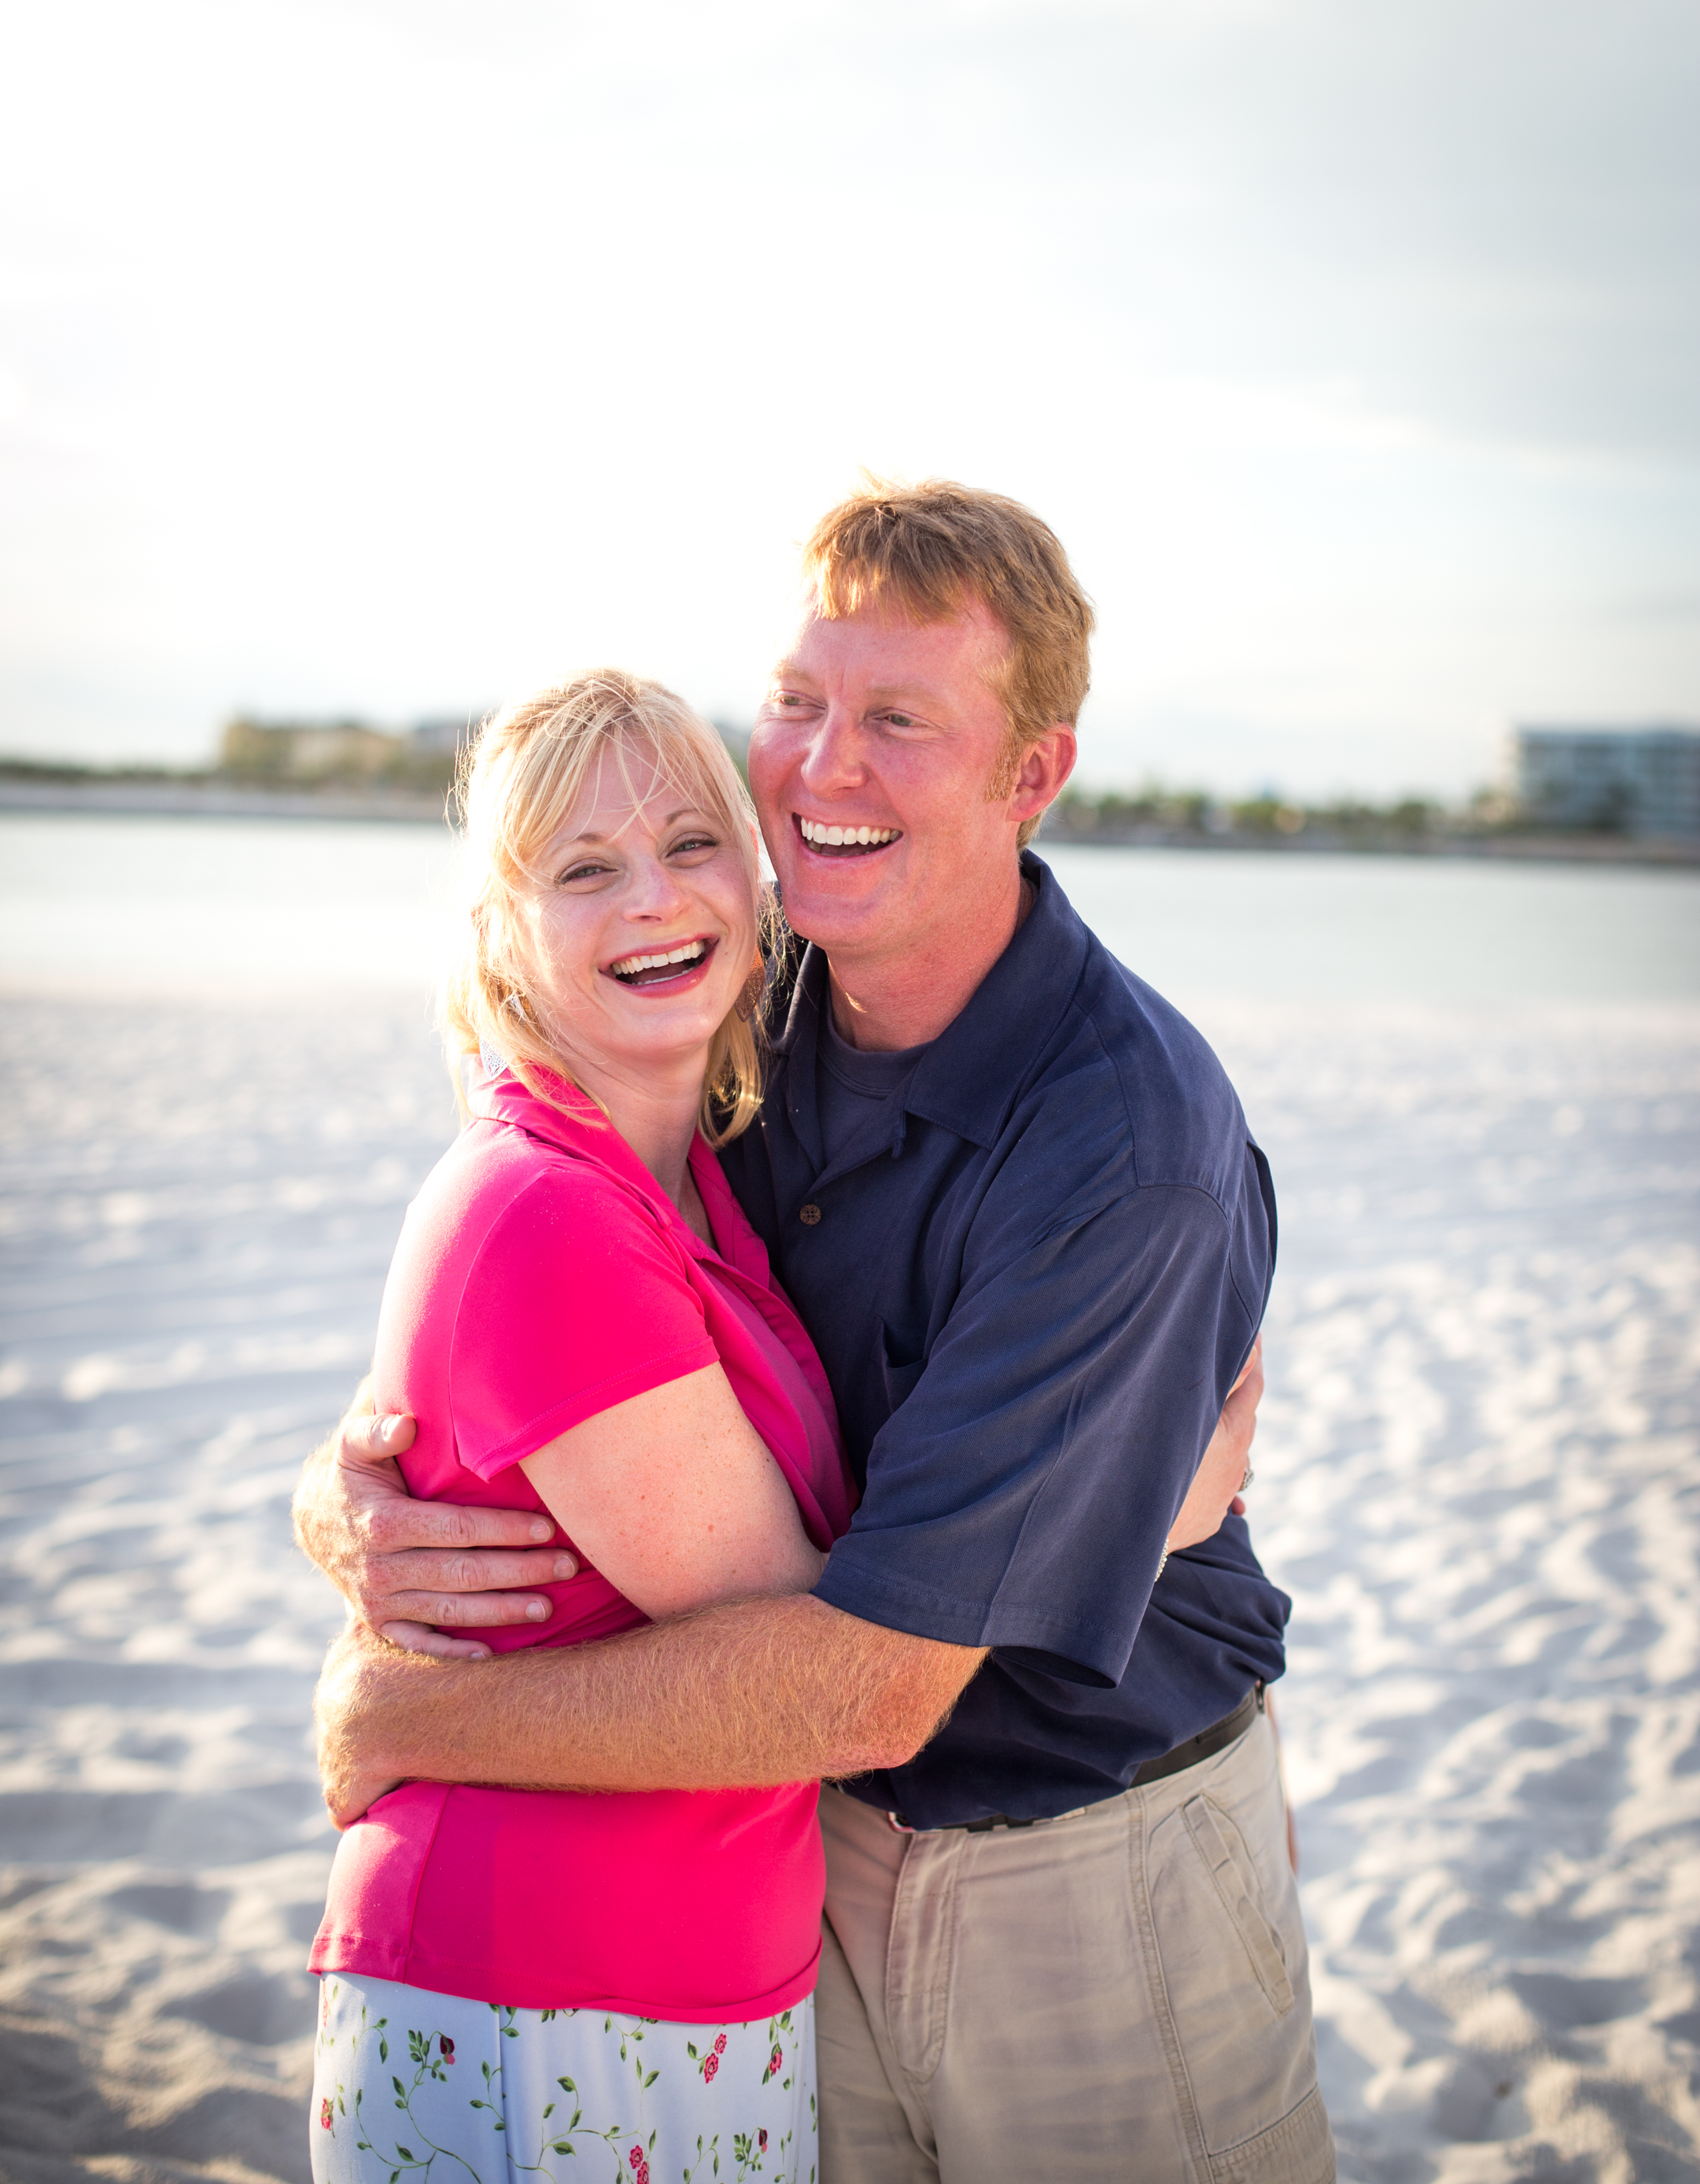 The Elrods went with bright pops of pink & contrasted with navy for their evening beach session. Love the contrast!